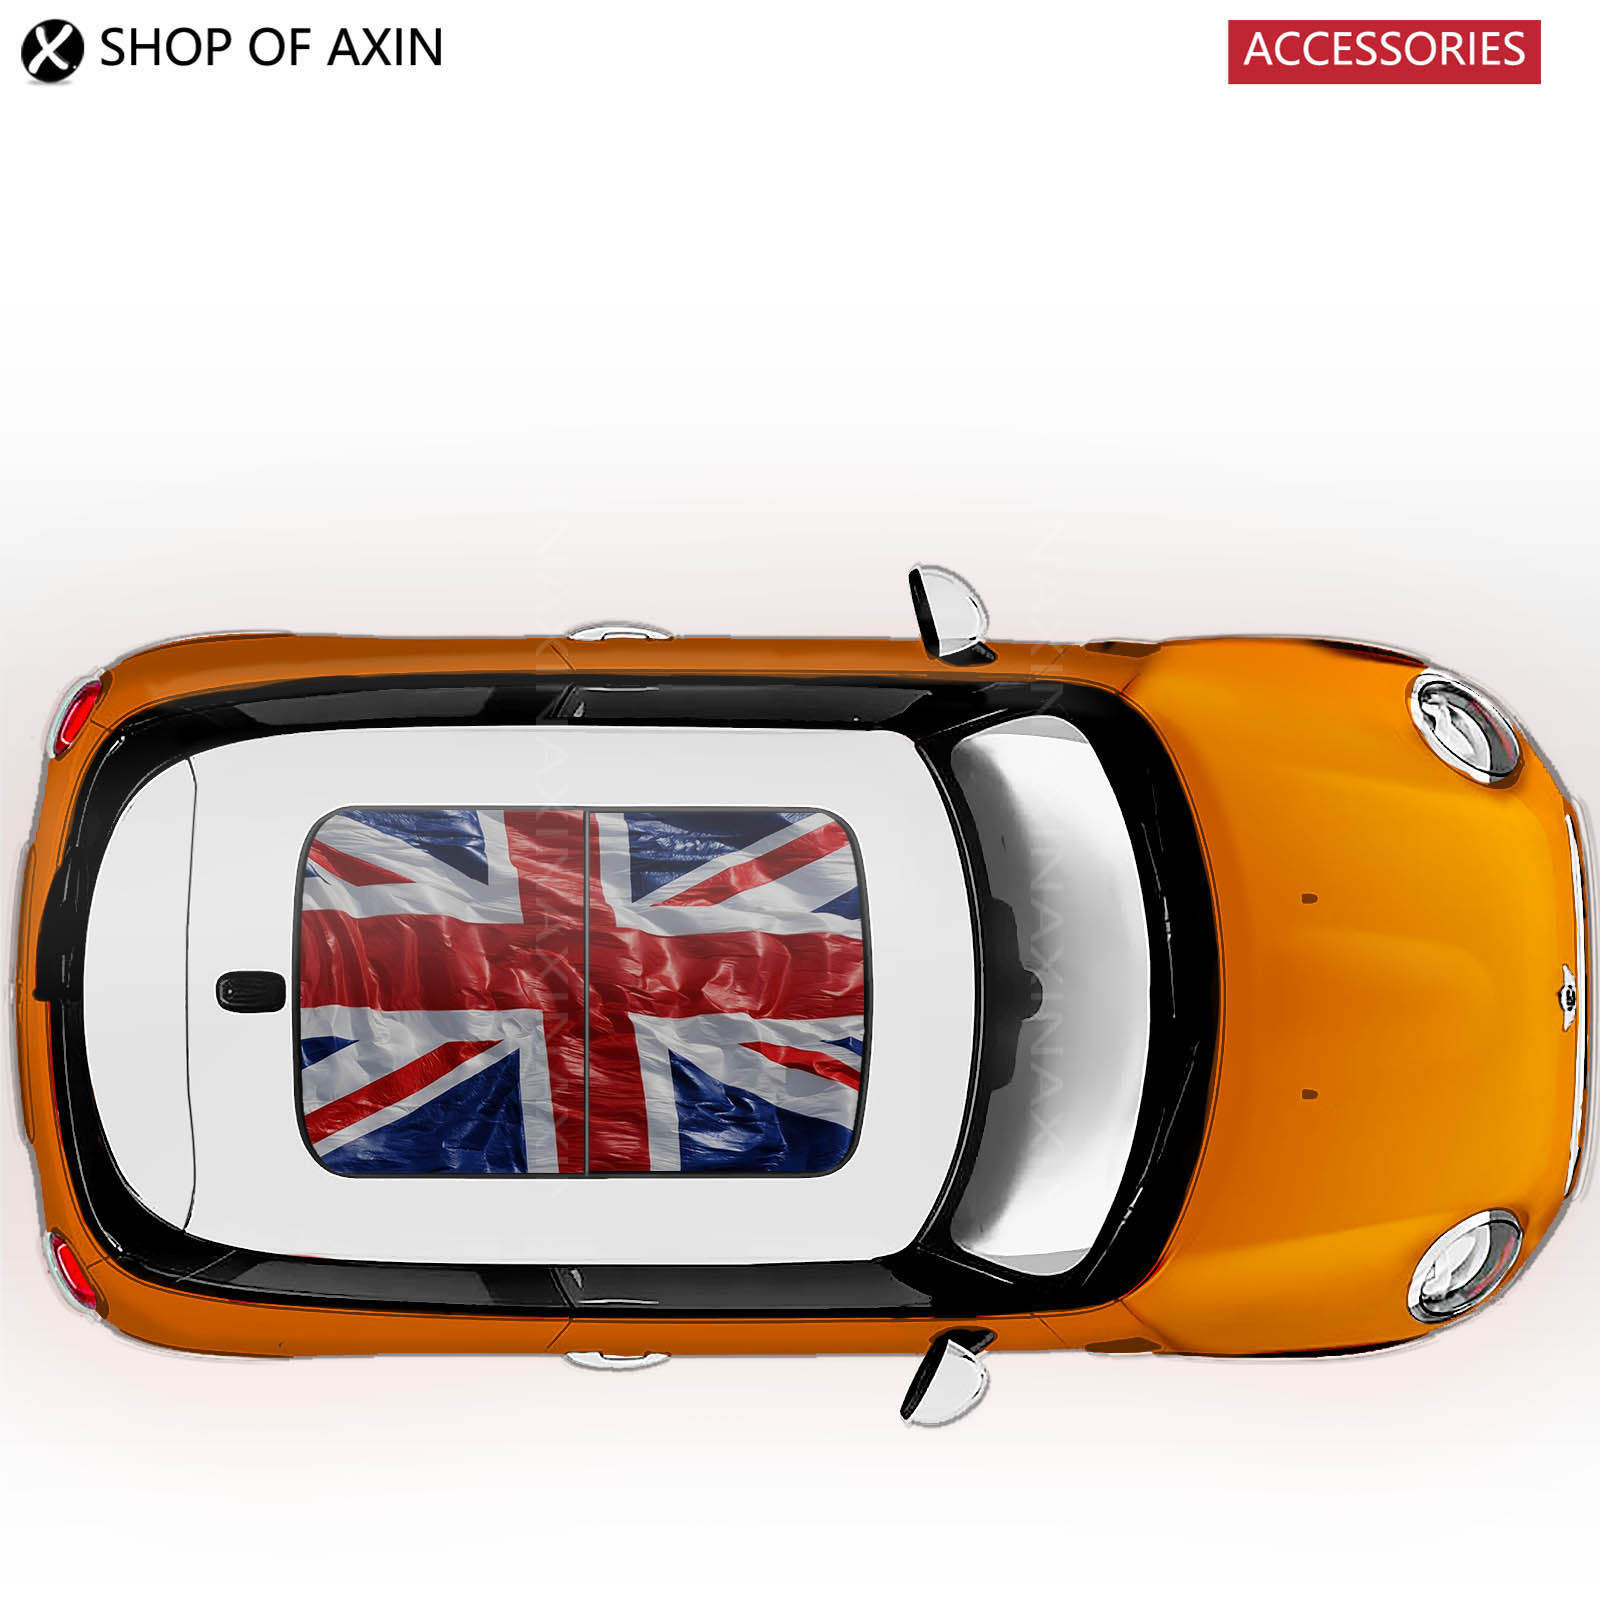 Wave Uk flag sun roof Graphics stickers Sunroof for MINI Cooper clubman countryman hardtop R50 R53 R55 R56 R60 R61 F54 F55 F56<br>